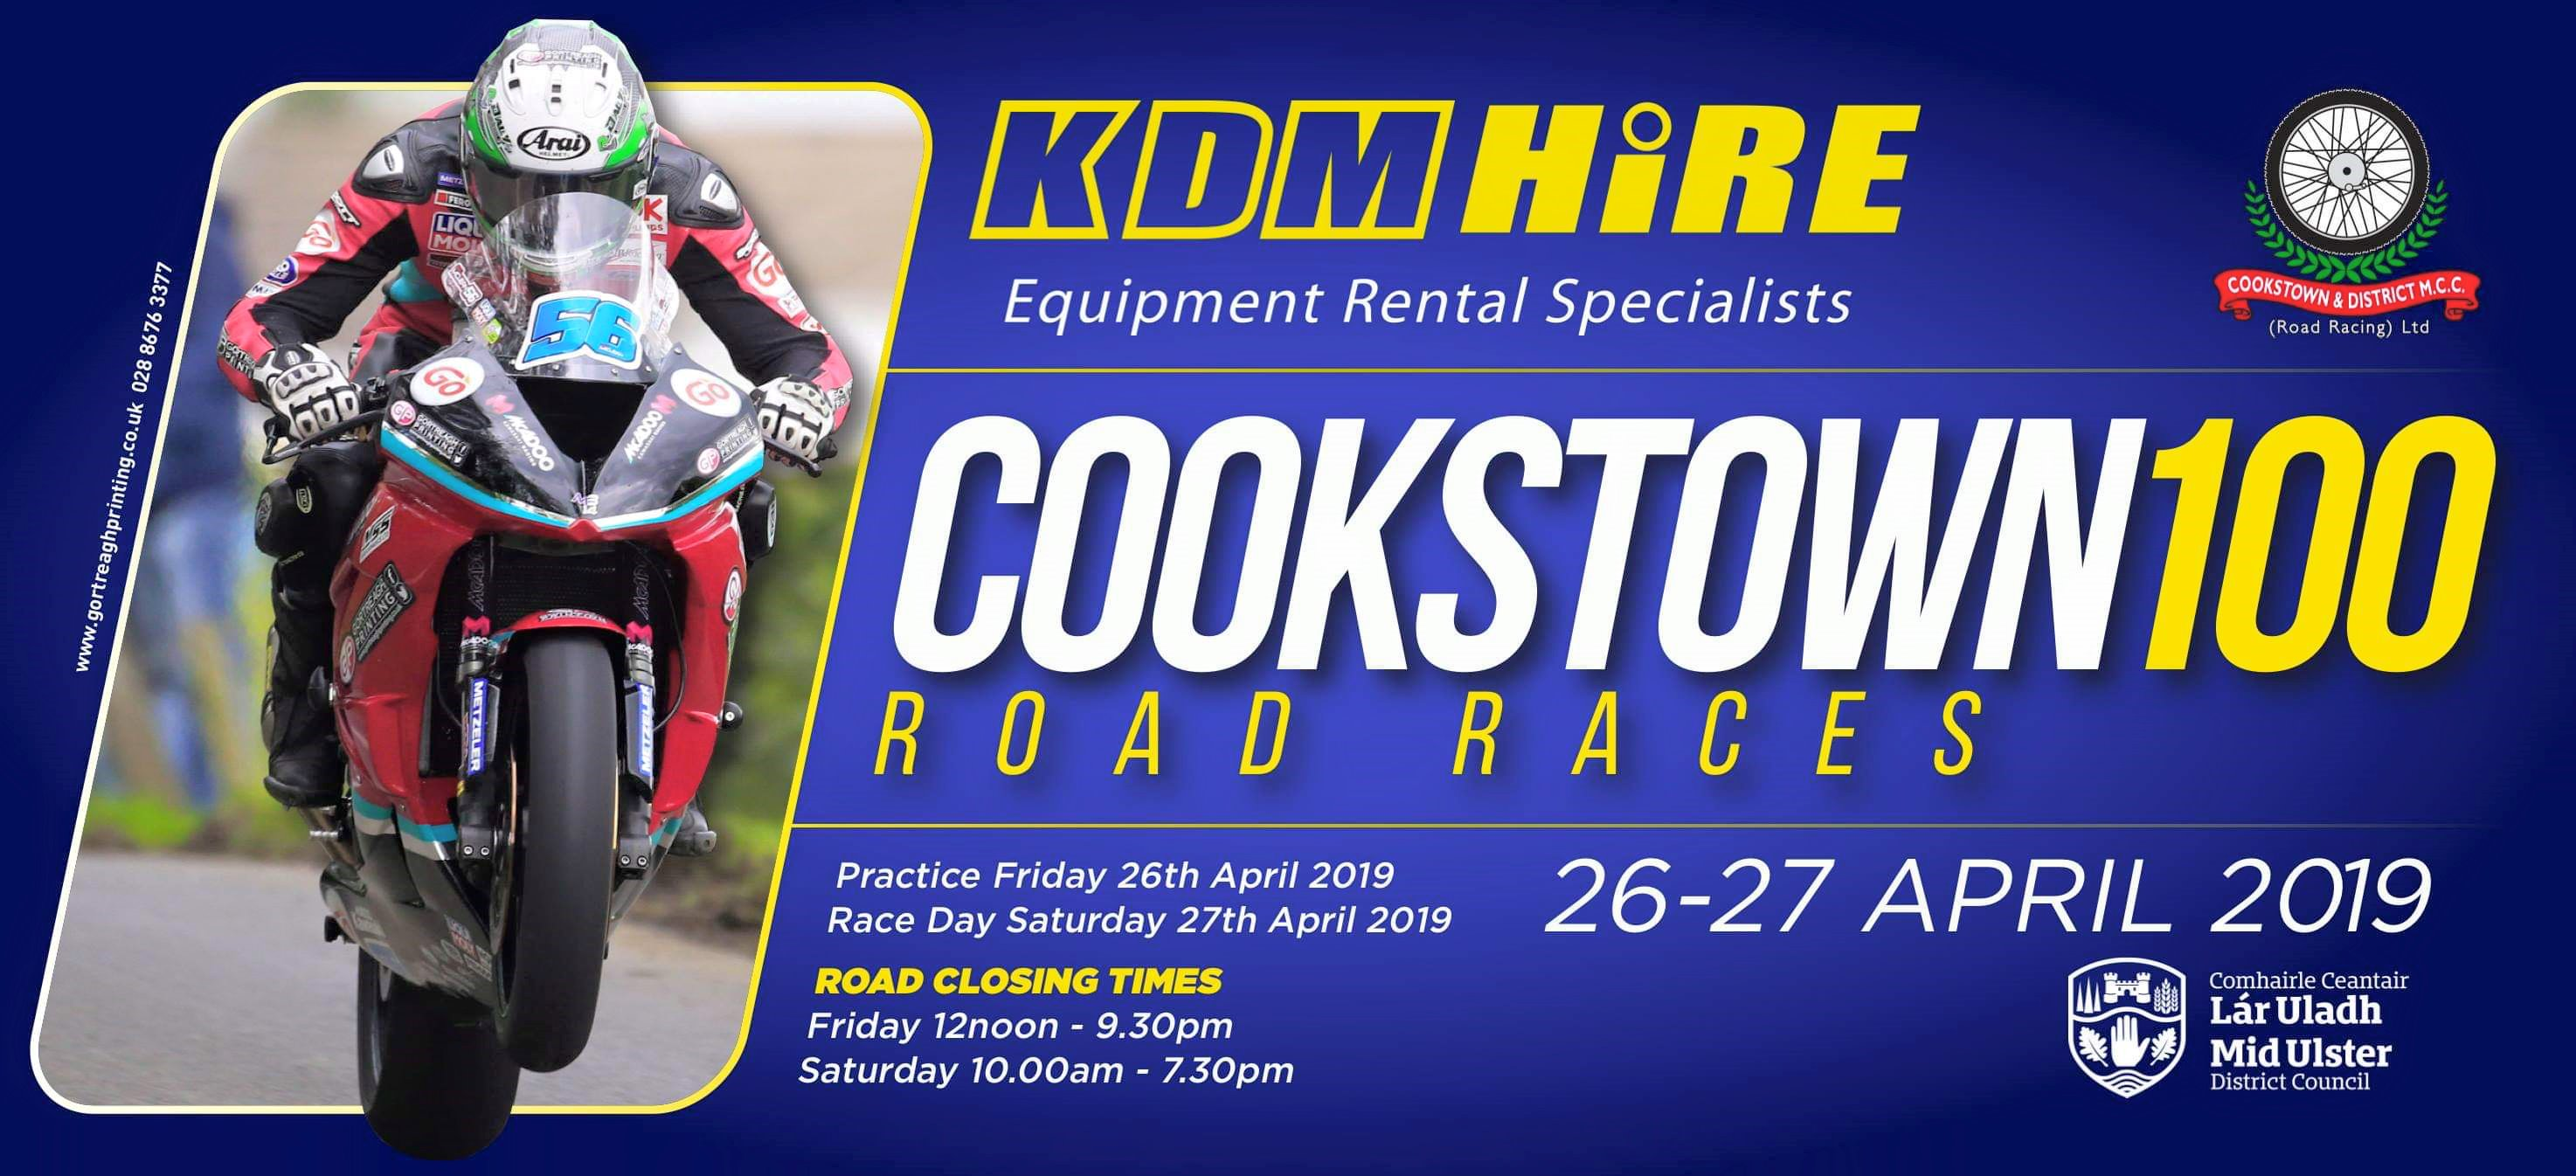 [Road racing] Cookstown 100  2019  48396974_2185635358134617_688272924410380288_o